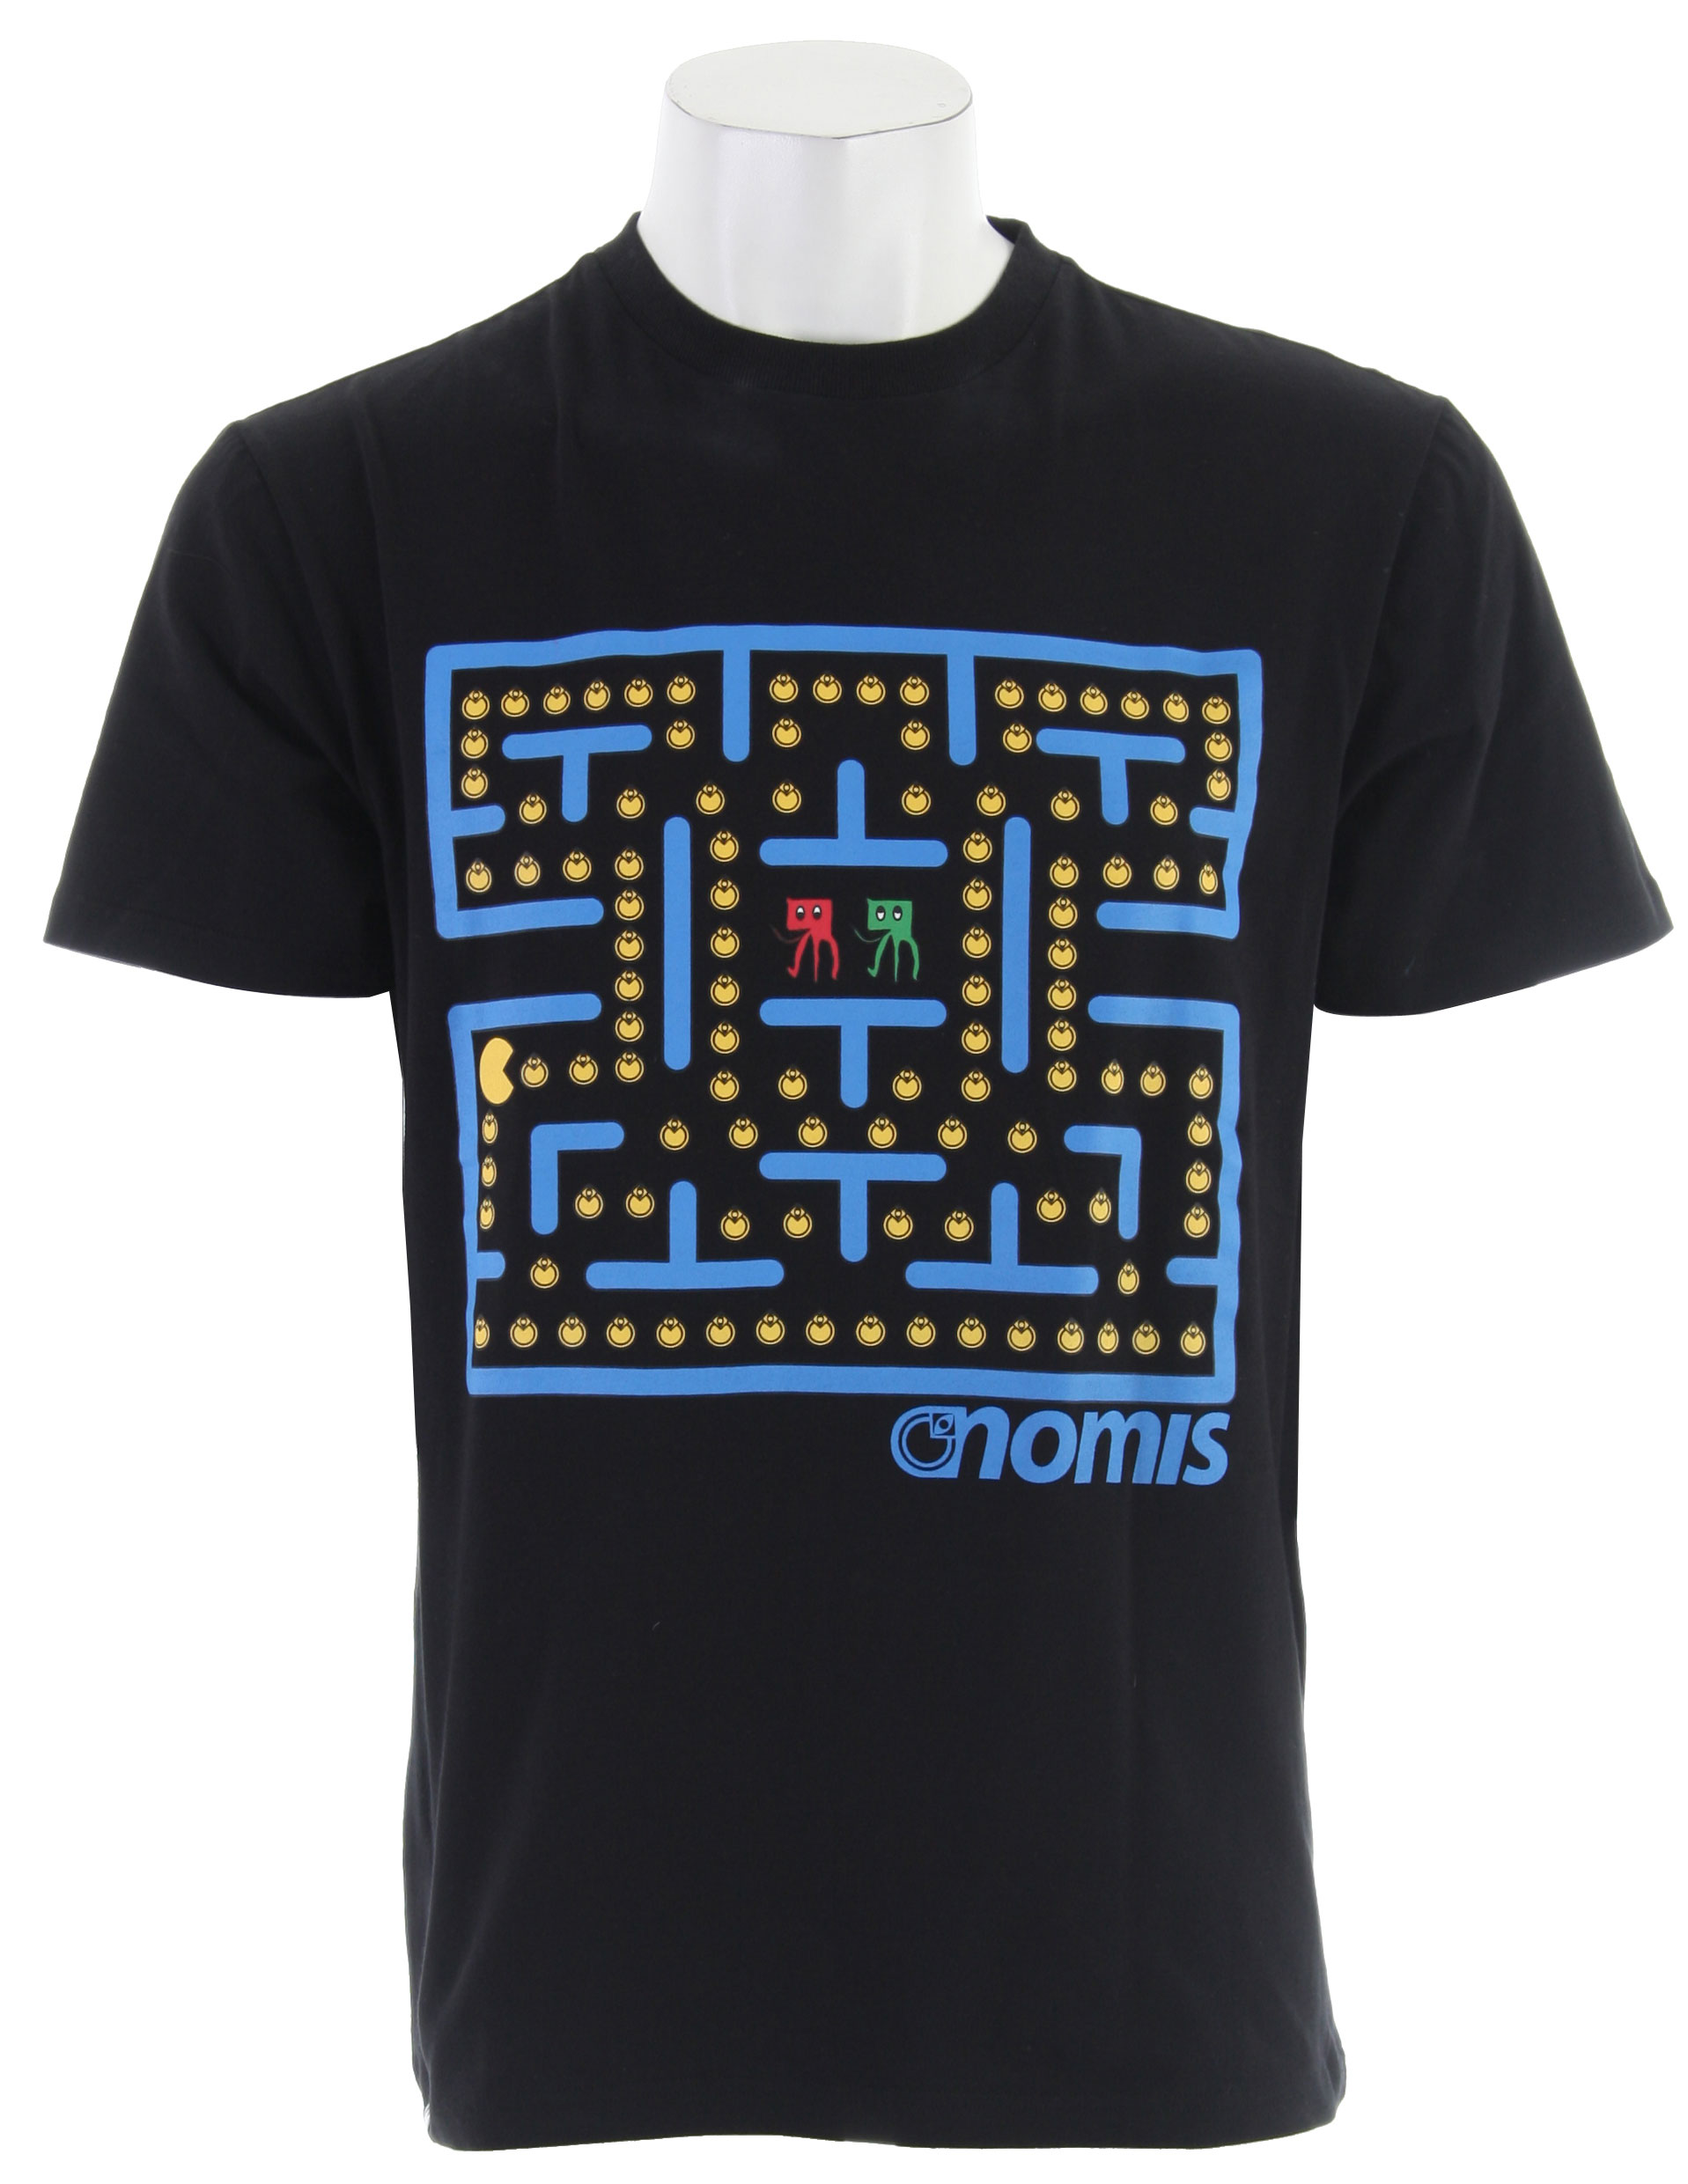 Design contest winner! Thanks for the idea, looks super tight. The Nomis Pacman T-Shirt is 95% Cotton 5% Spandex. - $22.95